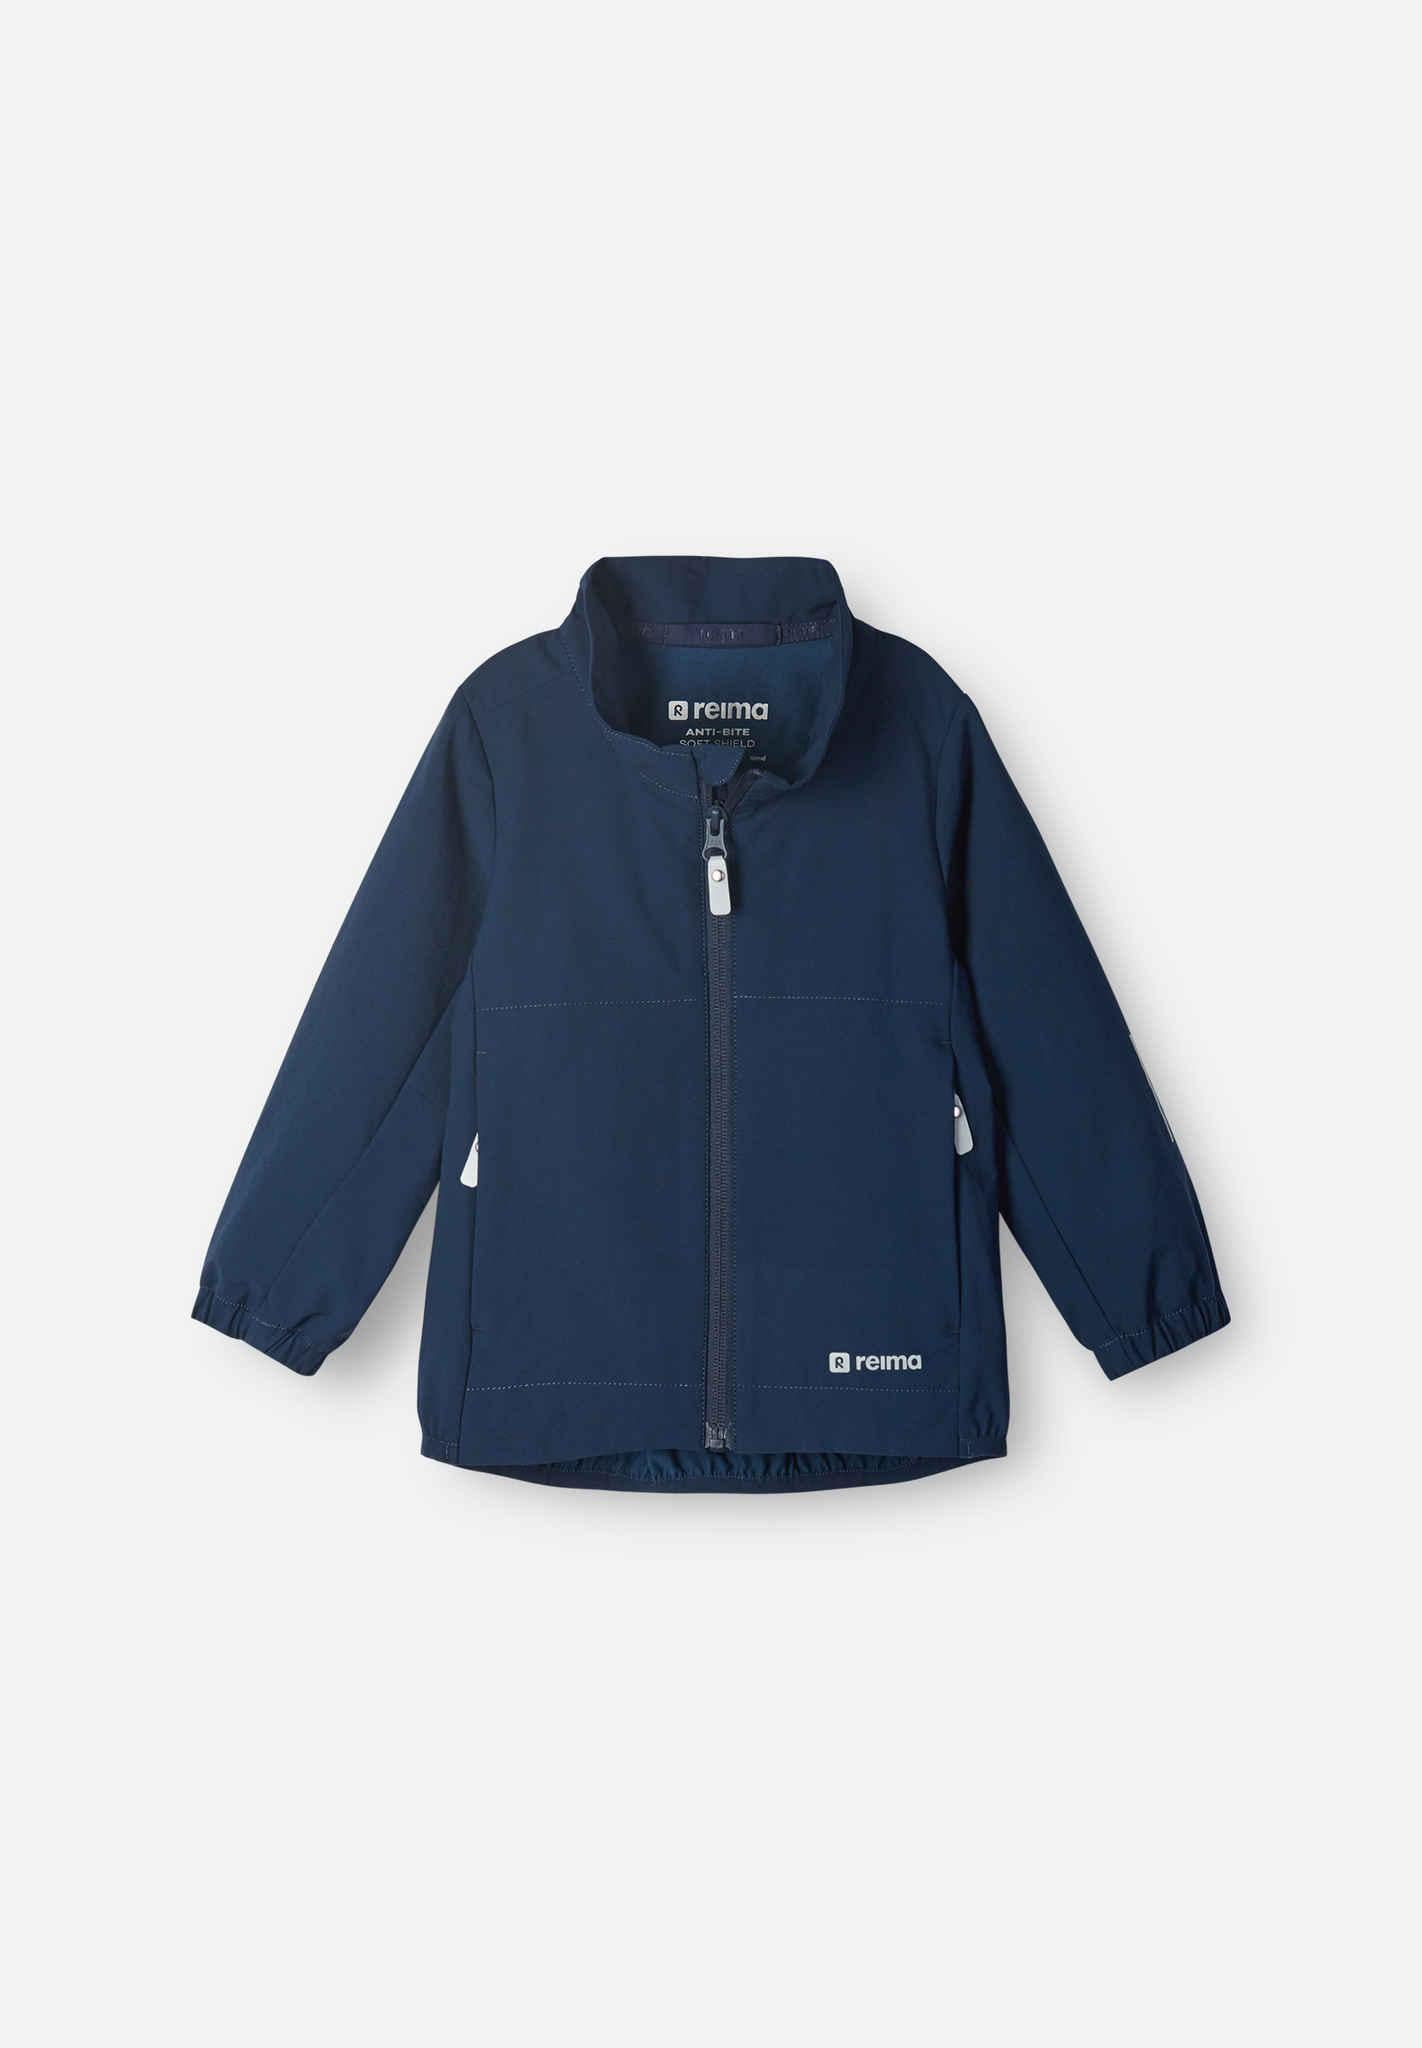 Anti-Bite Jacket Kannas, navy - Reima